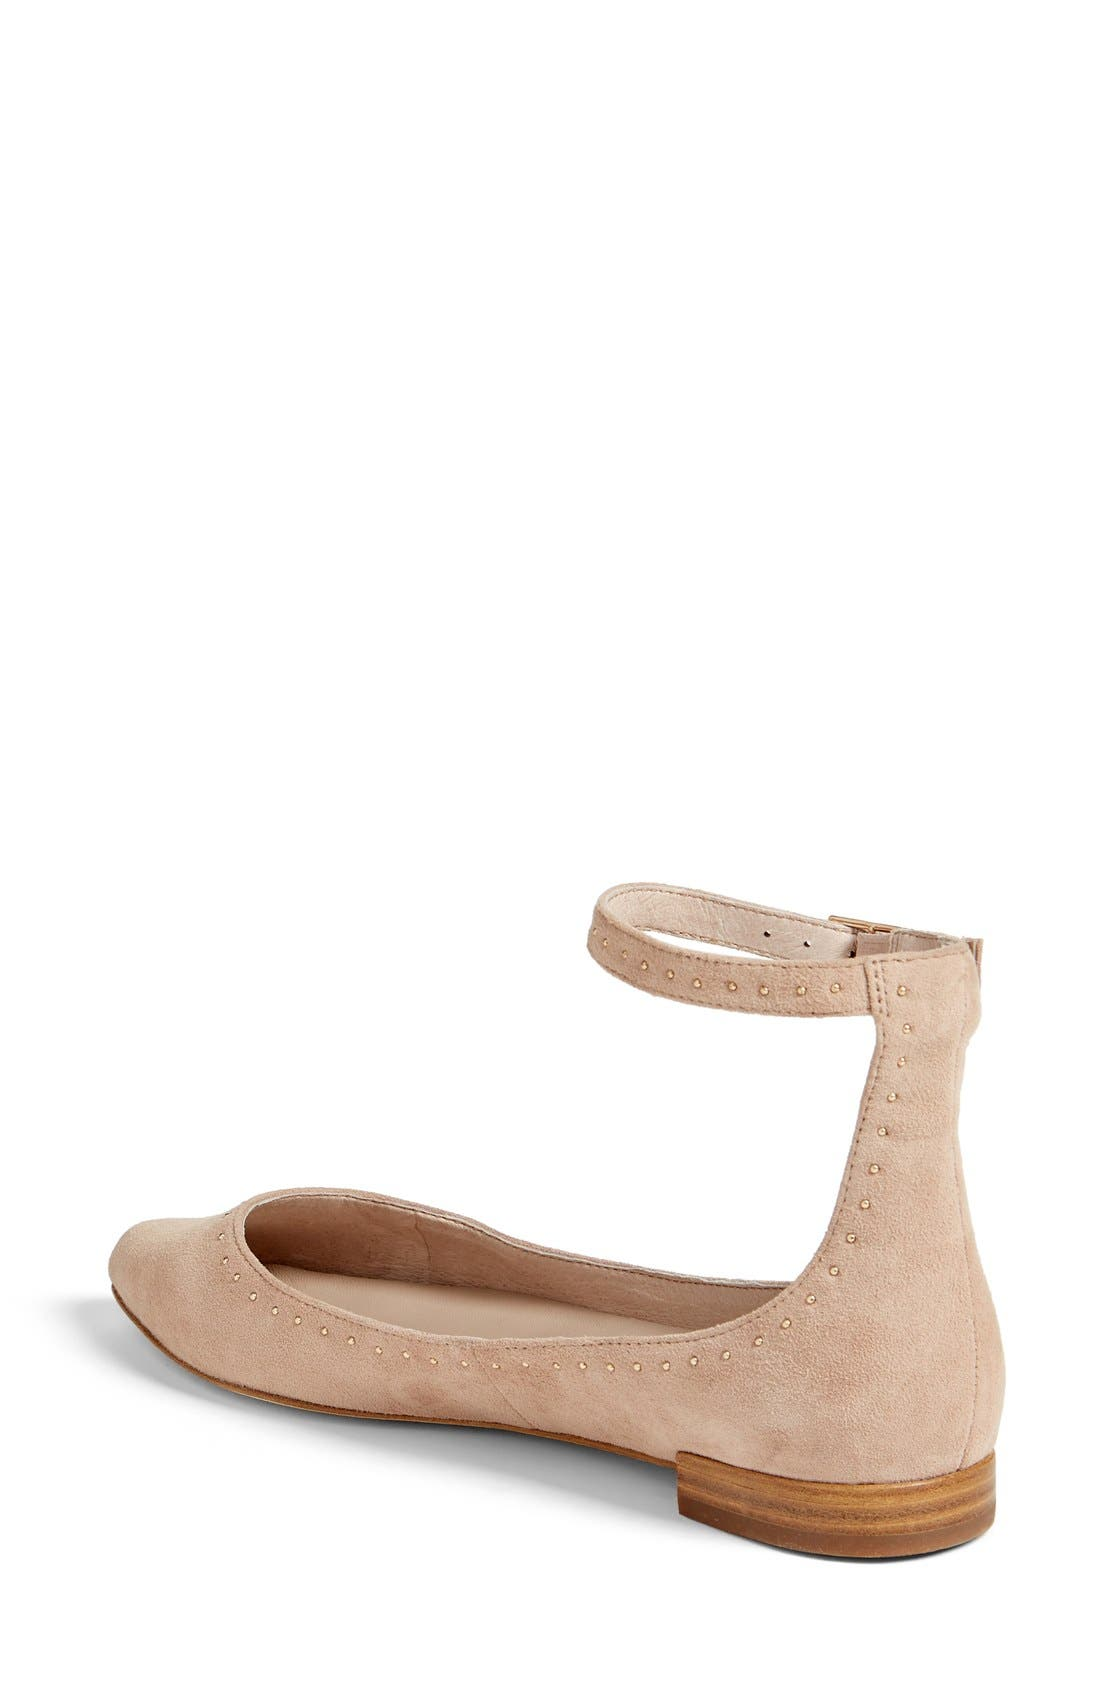 Afra Ankle Strap Ballet Flat,                             Alternate thumbnail 2, color,                             Mushroom